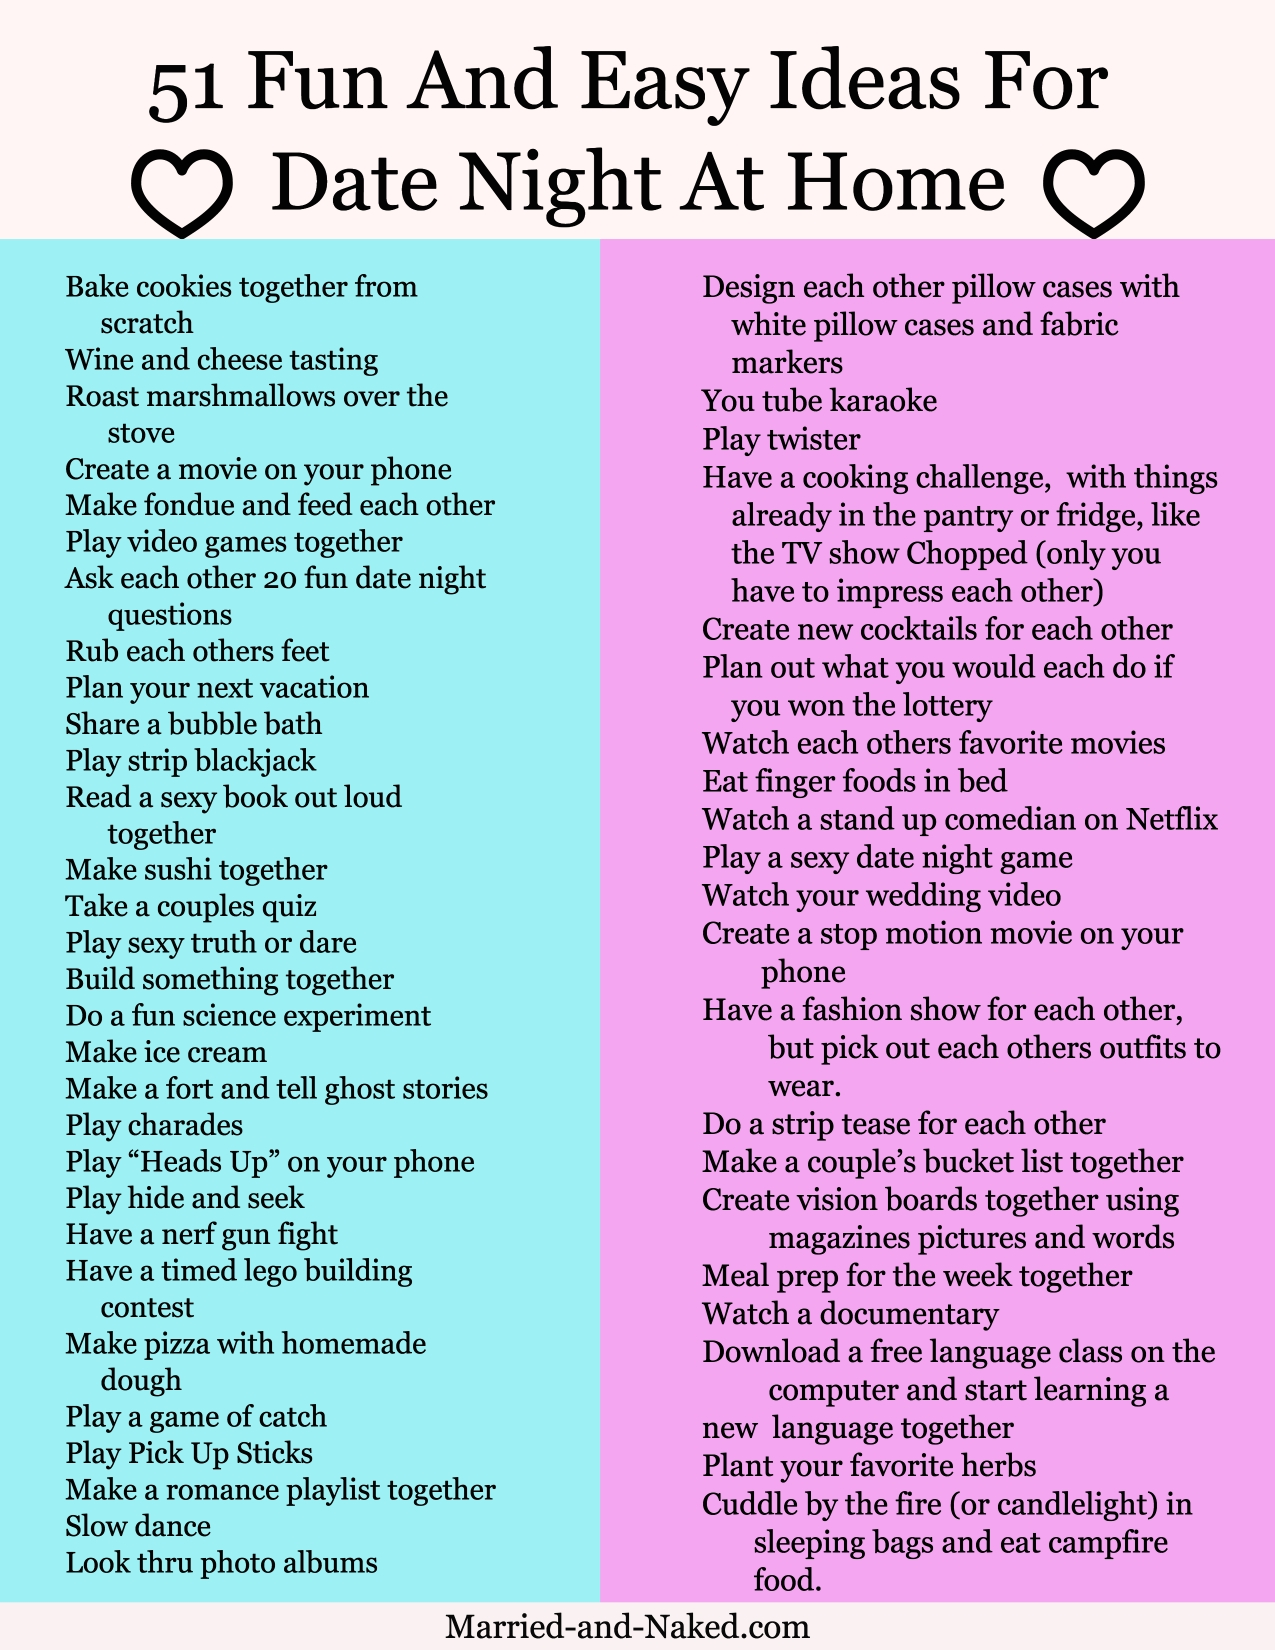 date night questions for married couples - married and naked | free